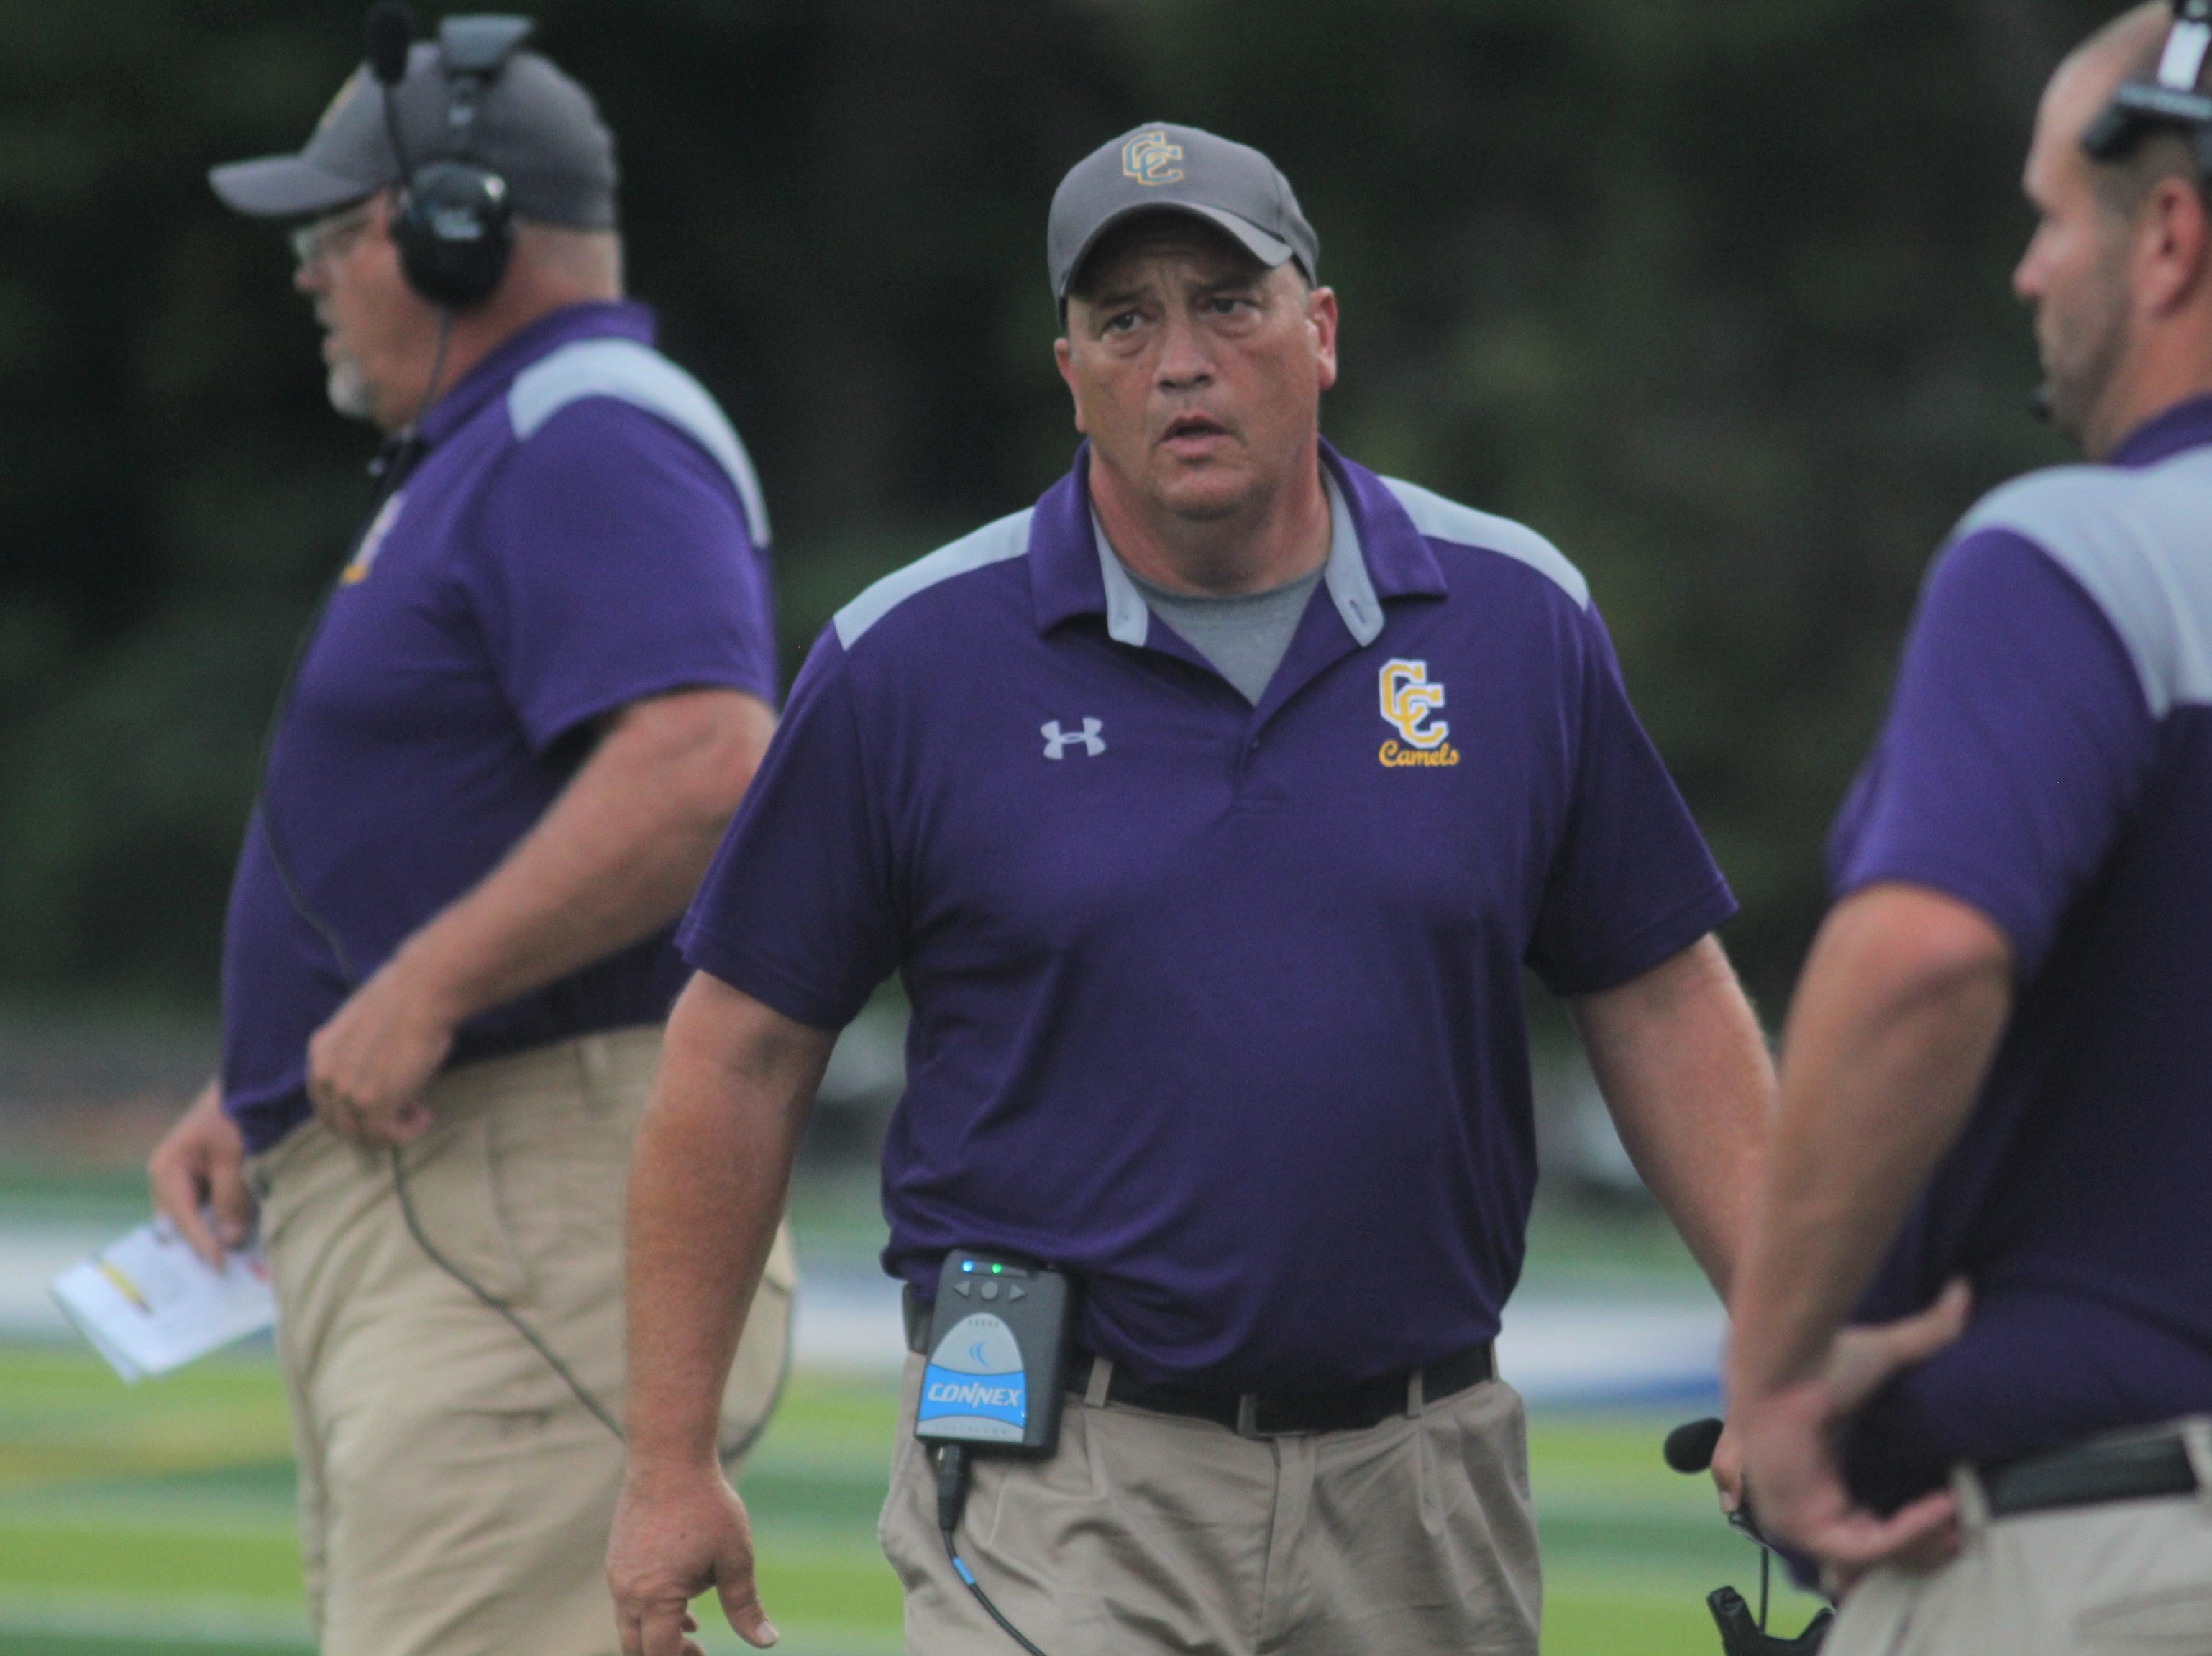 Campbell County head coach Mike Woolf as Campbell County and Newport Central Catholic played a football game August 31, 2018 at Covington Catholic High School. Campbell County led 24-0 at halftime when the game was suspended due to lightning.